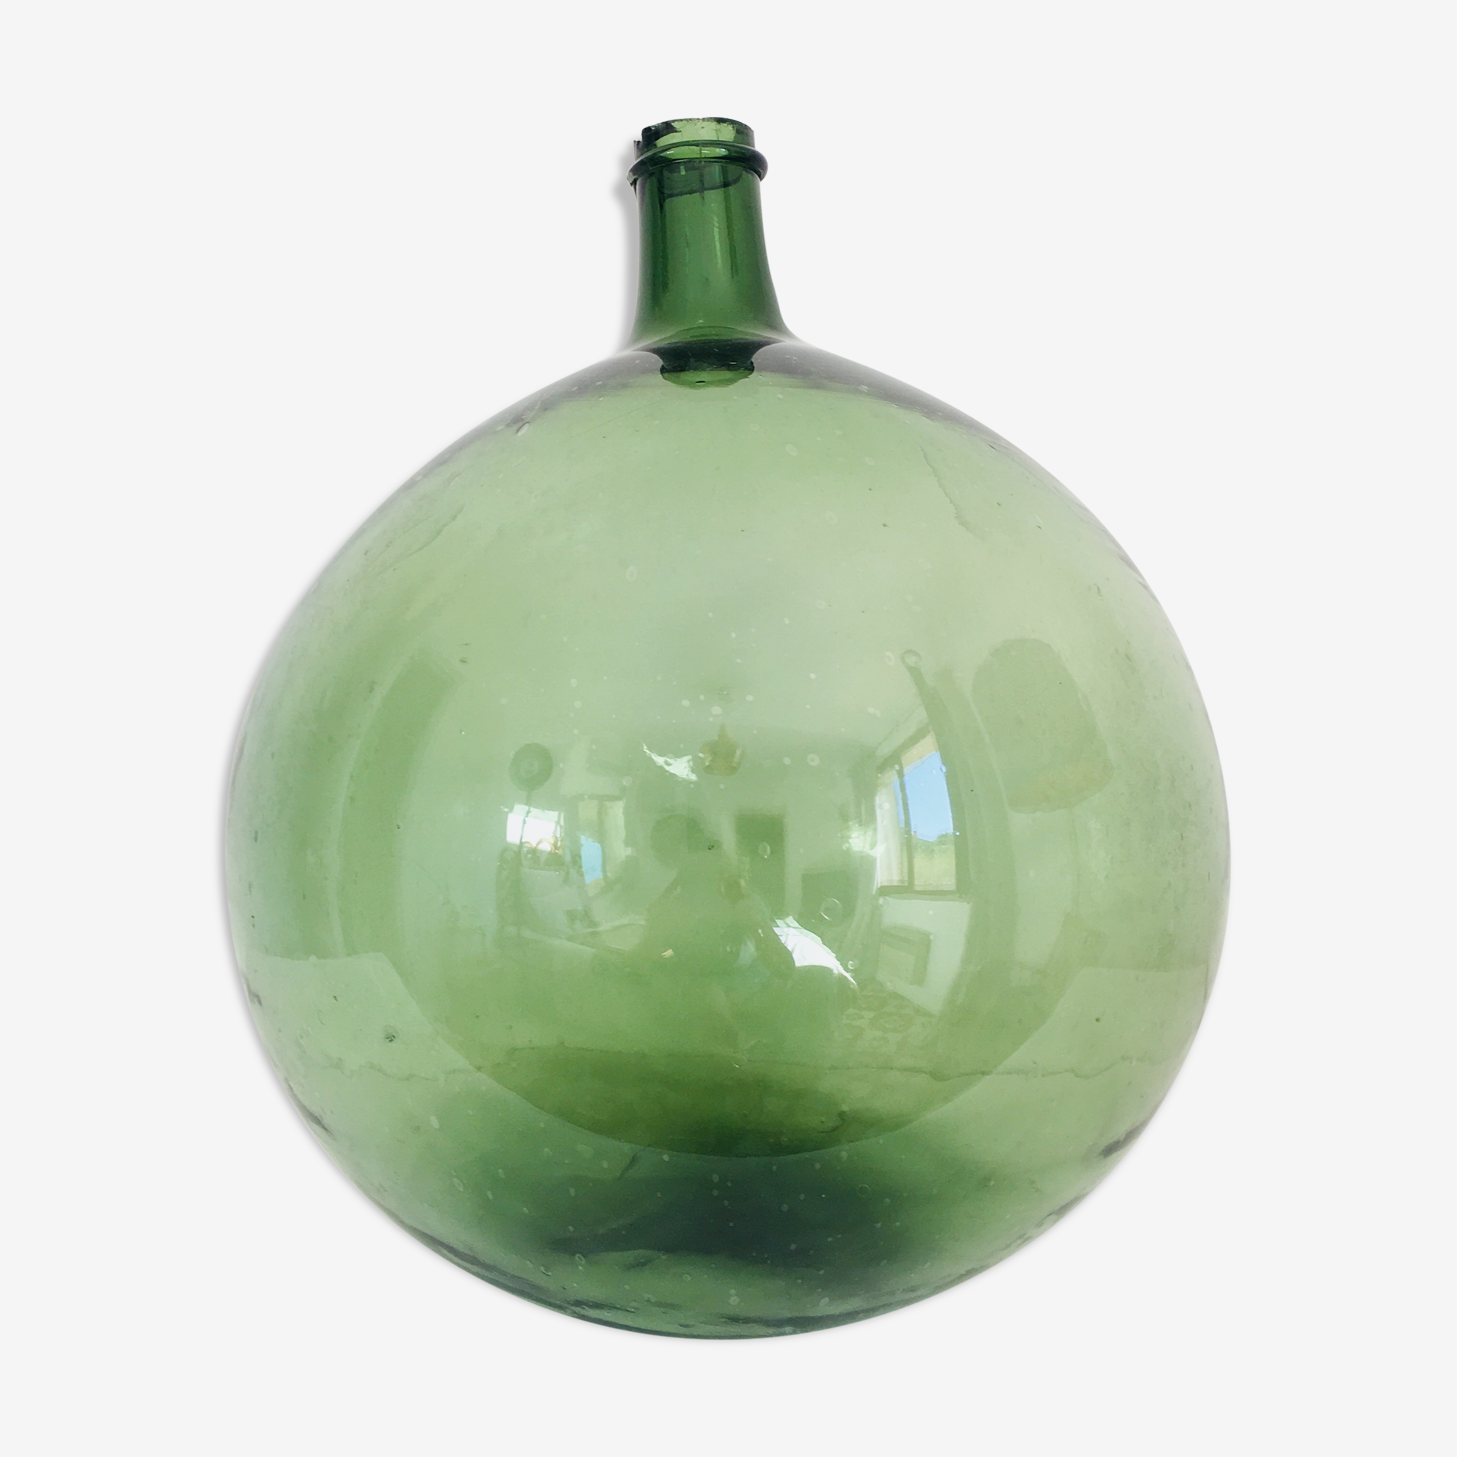 25 litre demijohn green and round